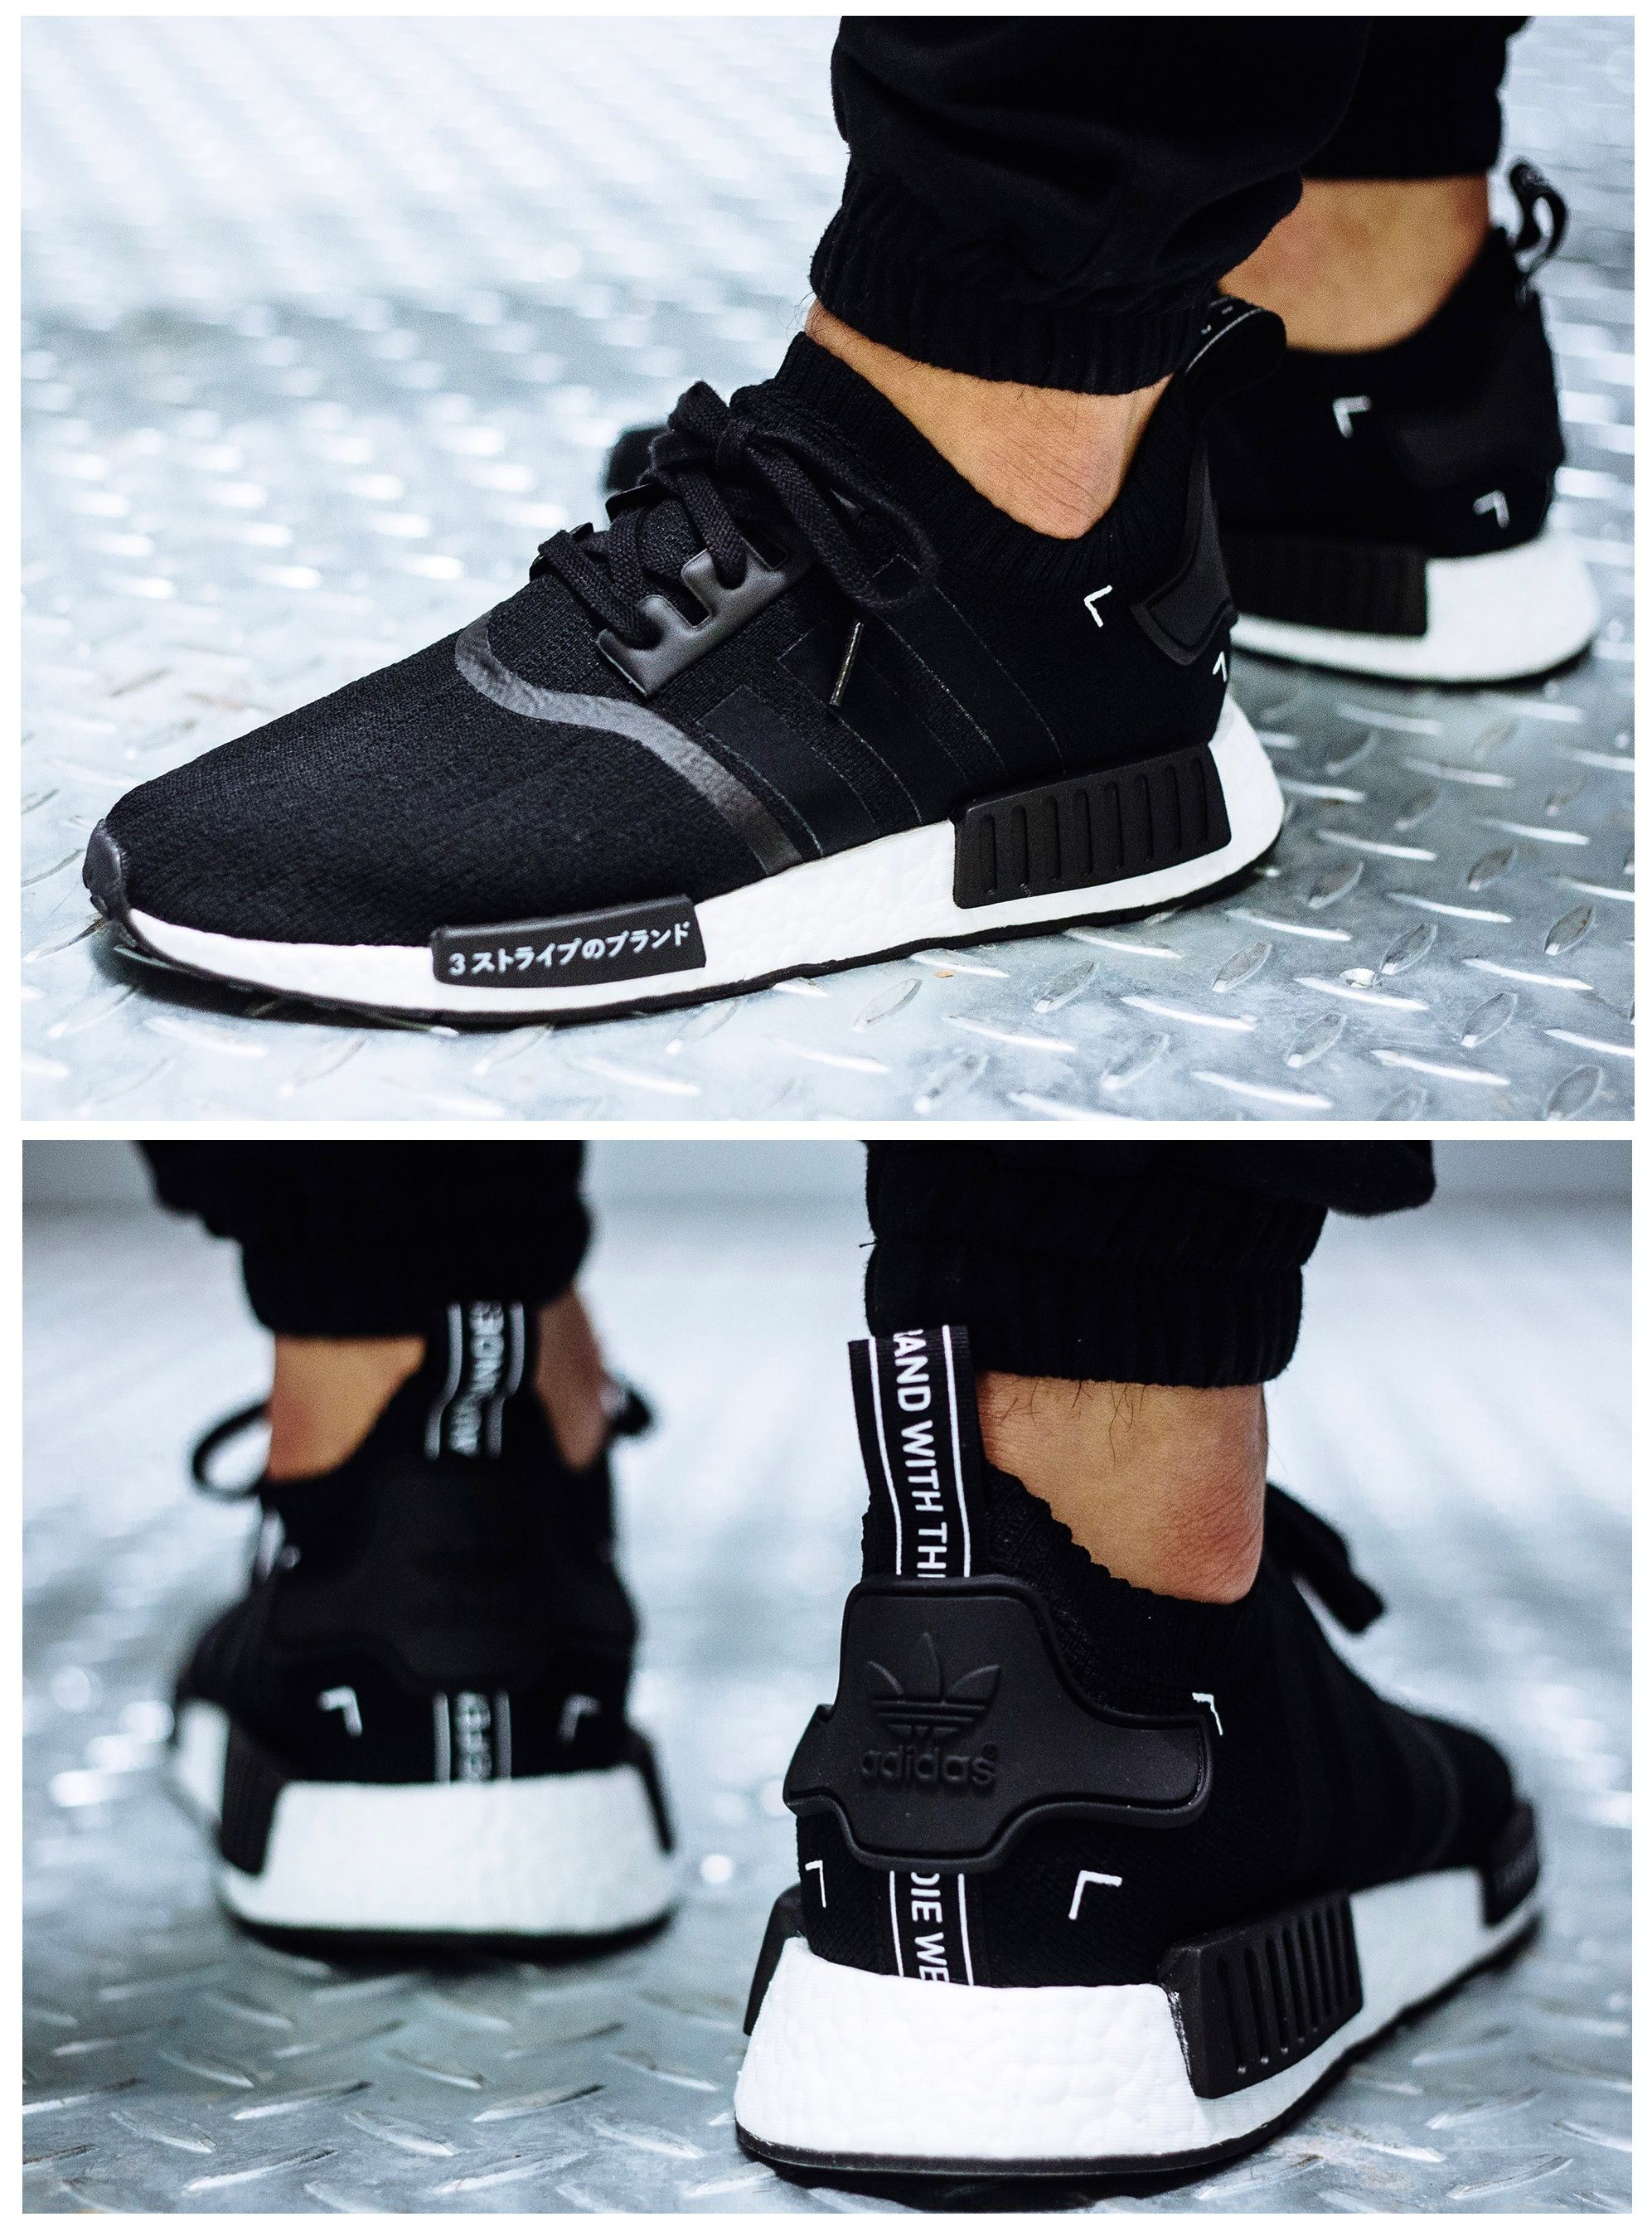 03855e6f897f adidas Originals NMD  Black